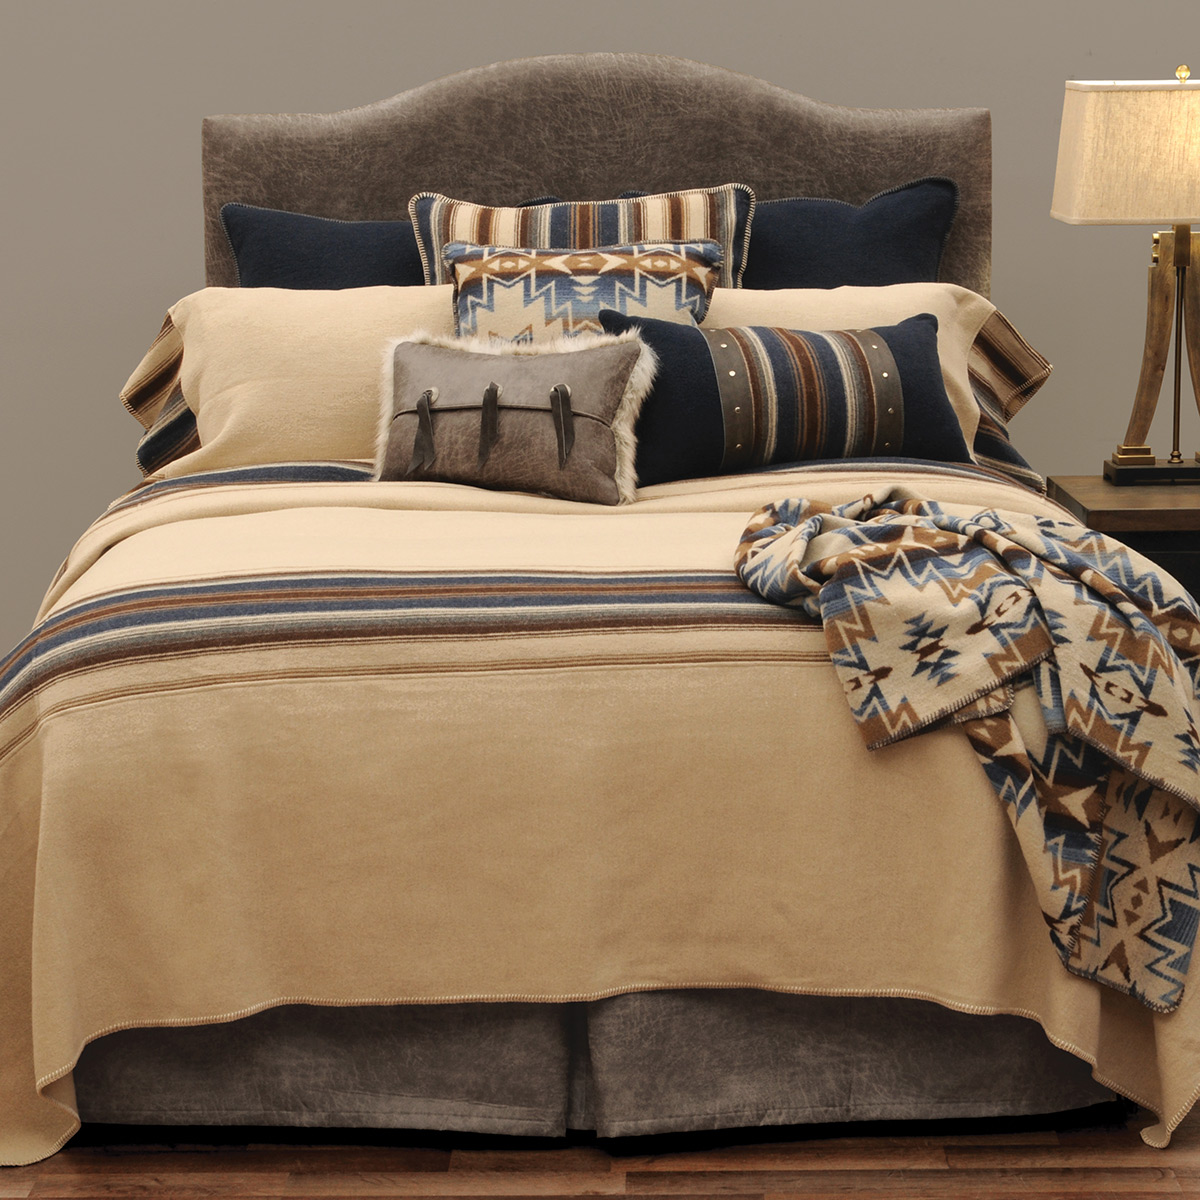 Cadillac Ranch Basic Bed Set - Queen